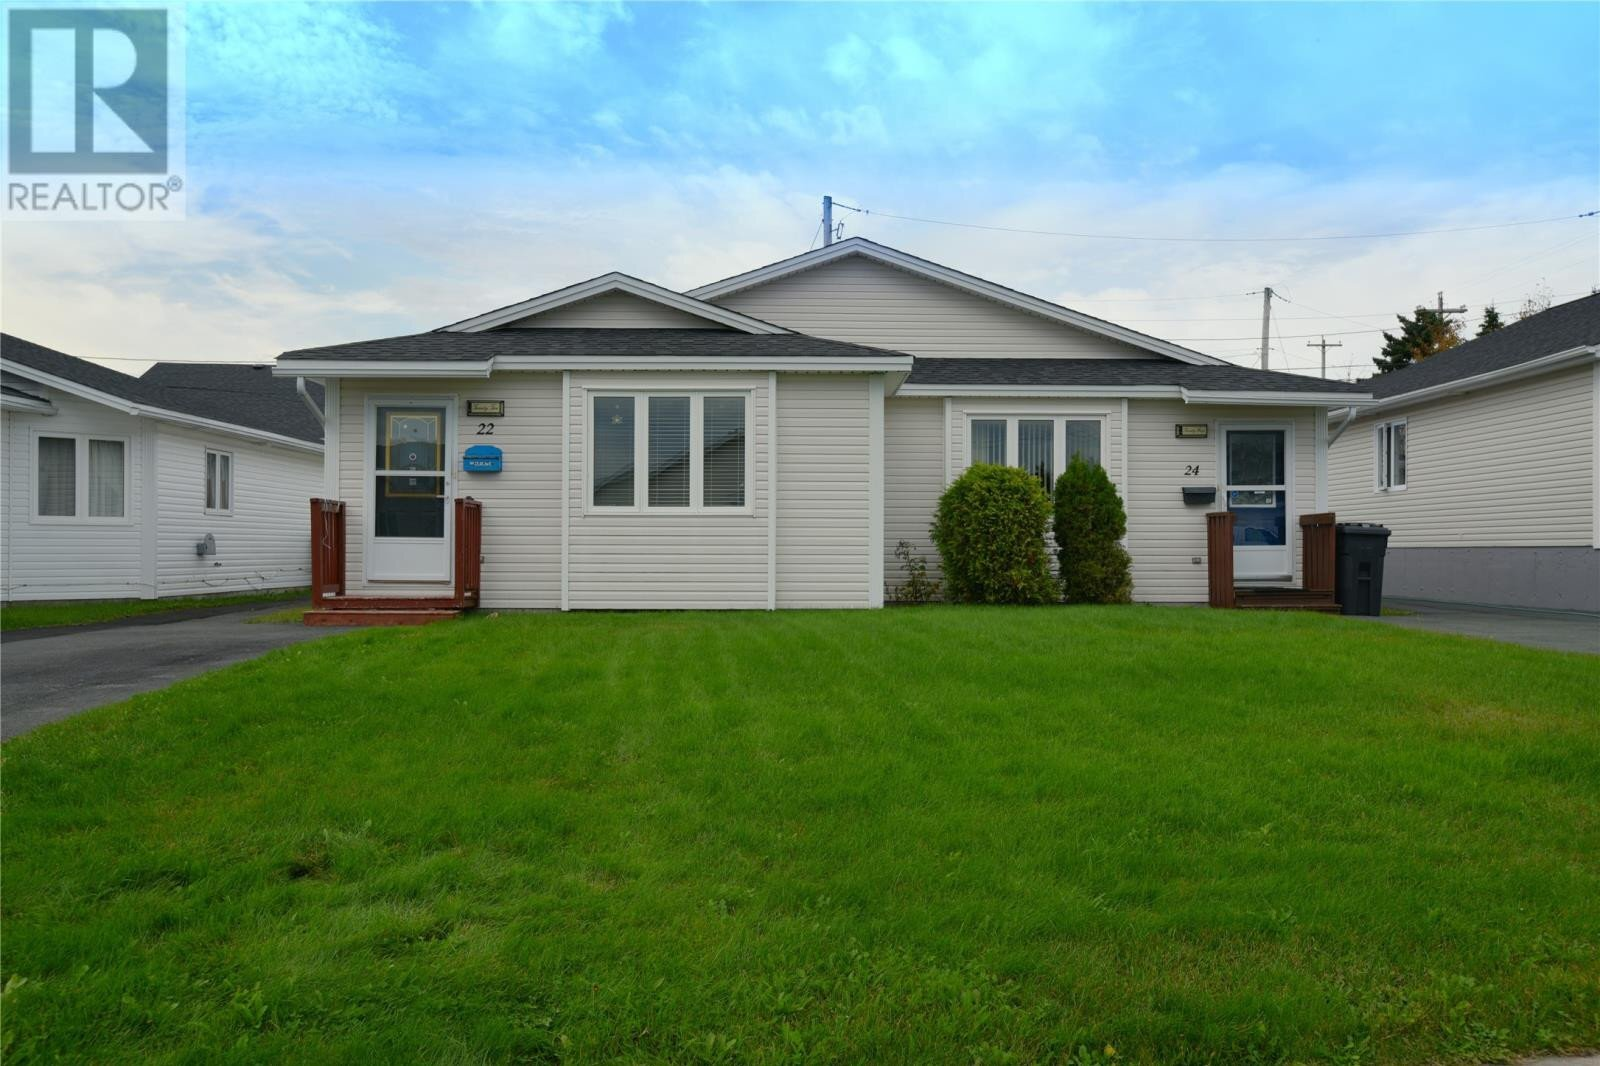 House for sale at 22 Clover Brae Cres Mount Pearl Newfoundland - MLS: 1222500